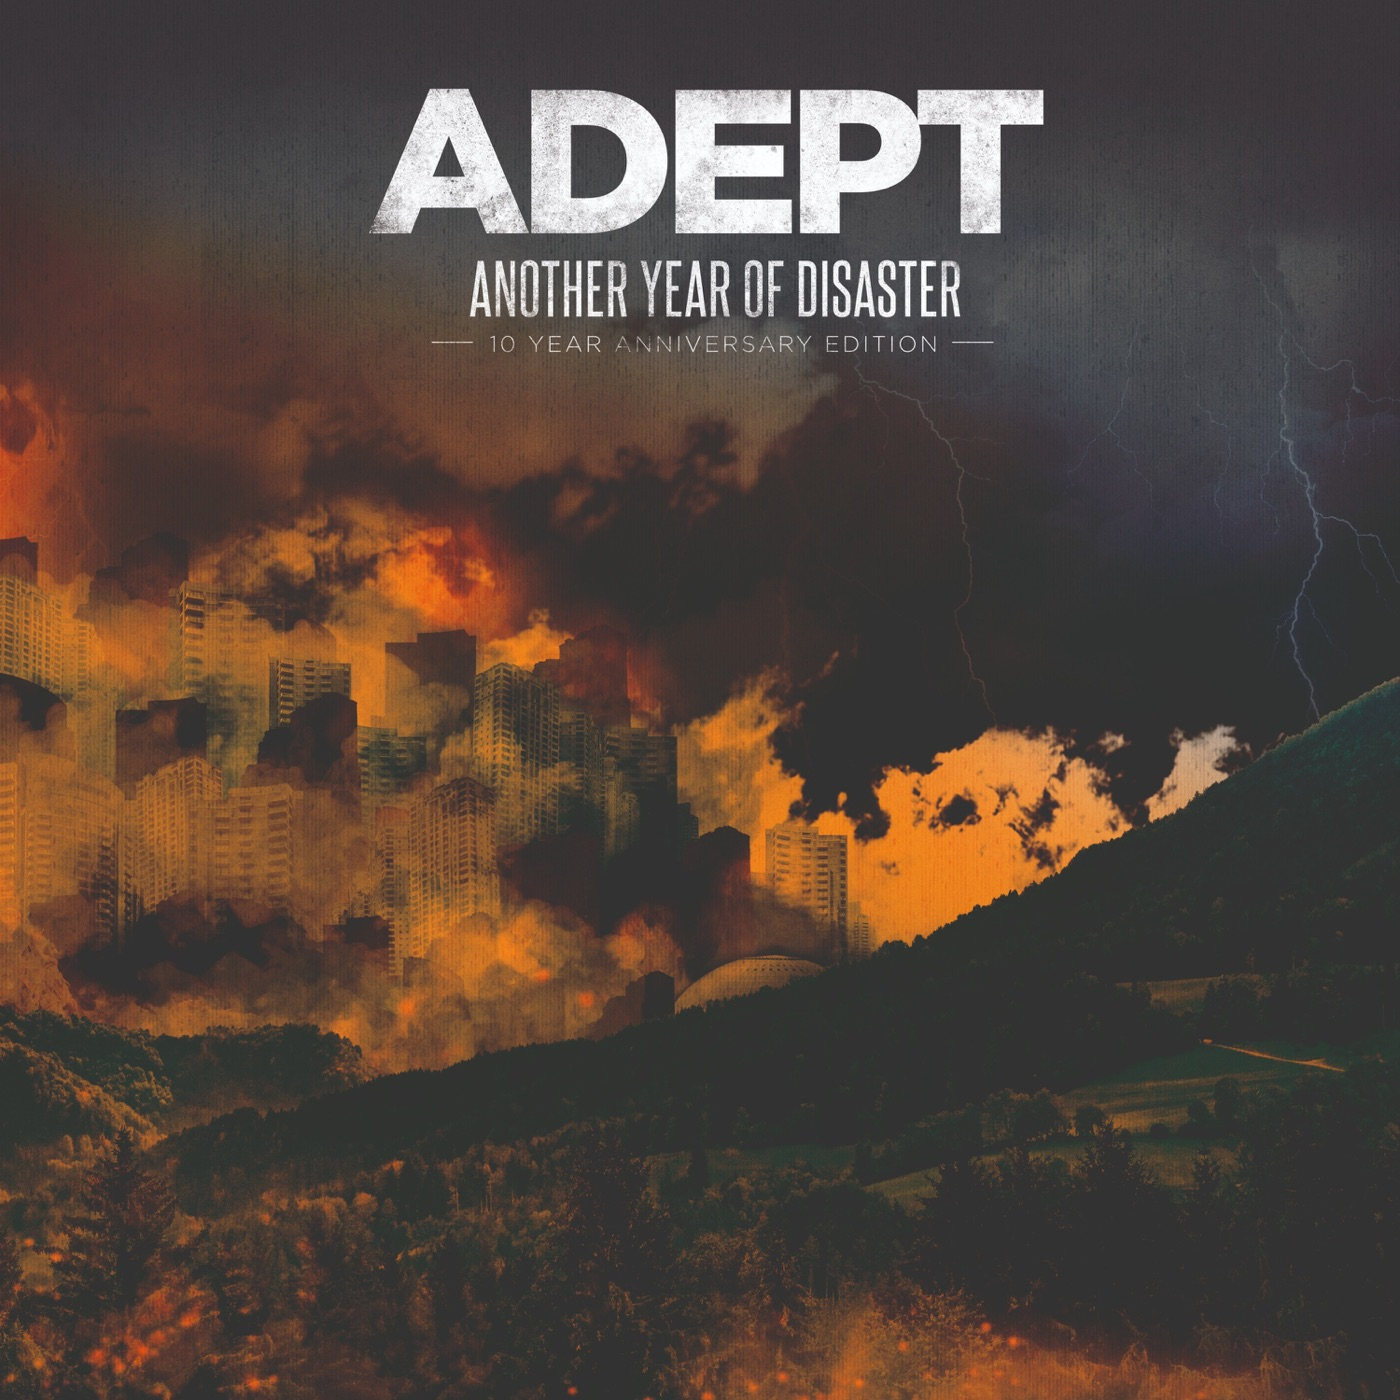 Adept - Another Year of Disaster [10 Year Anniversary Edition] (2019)